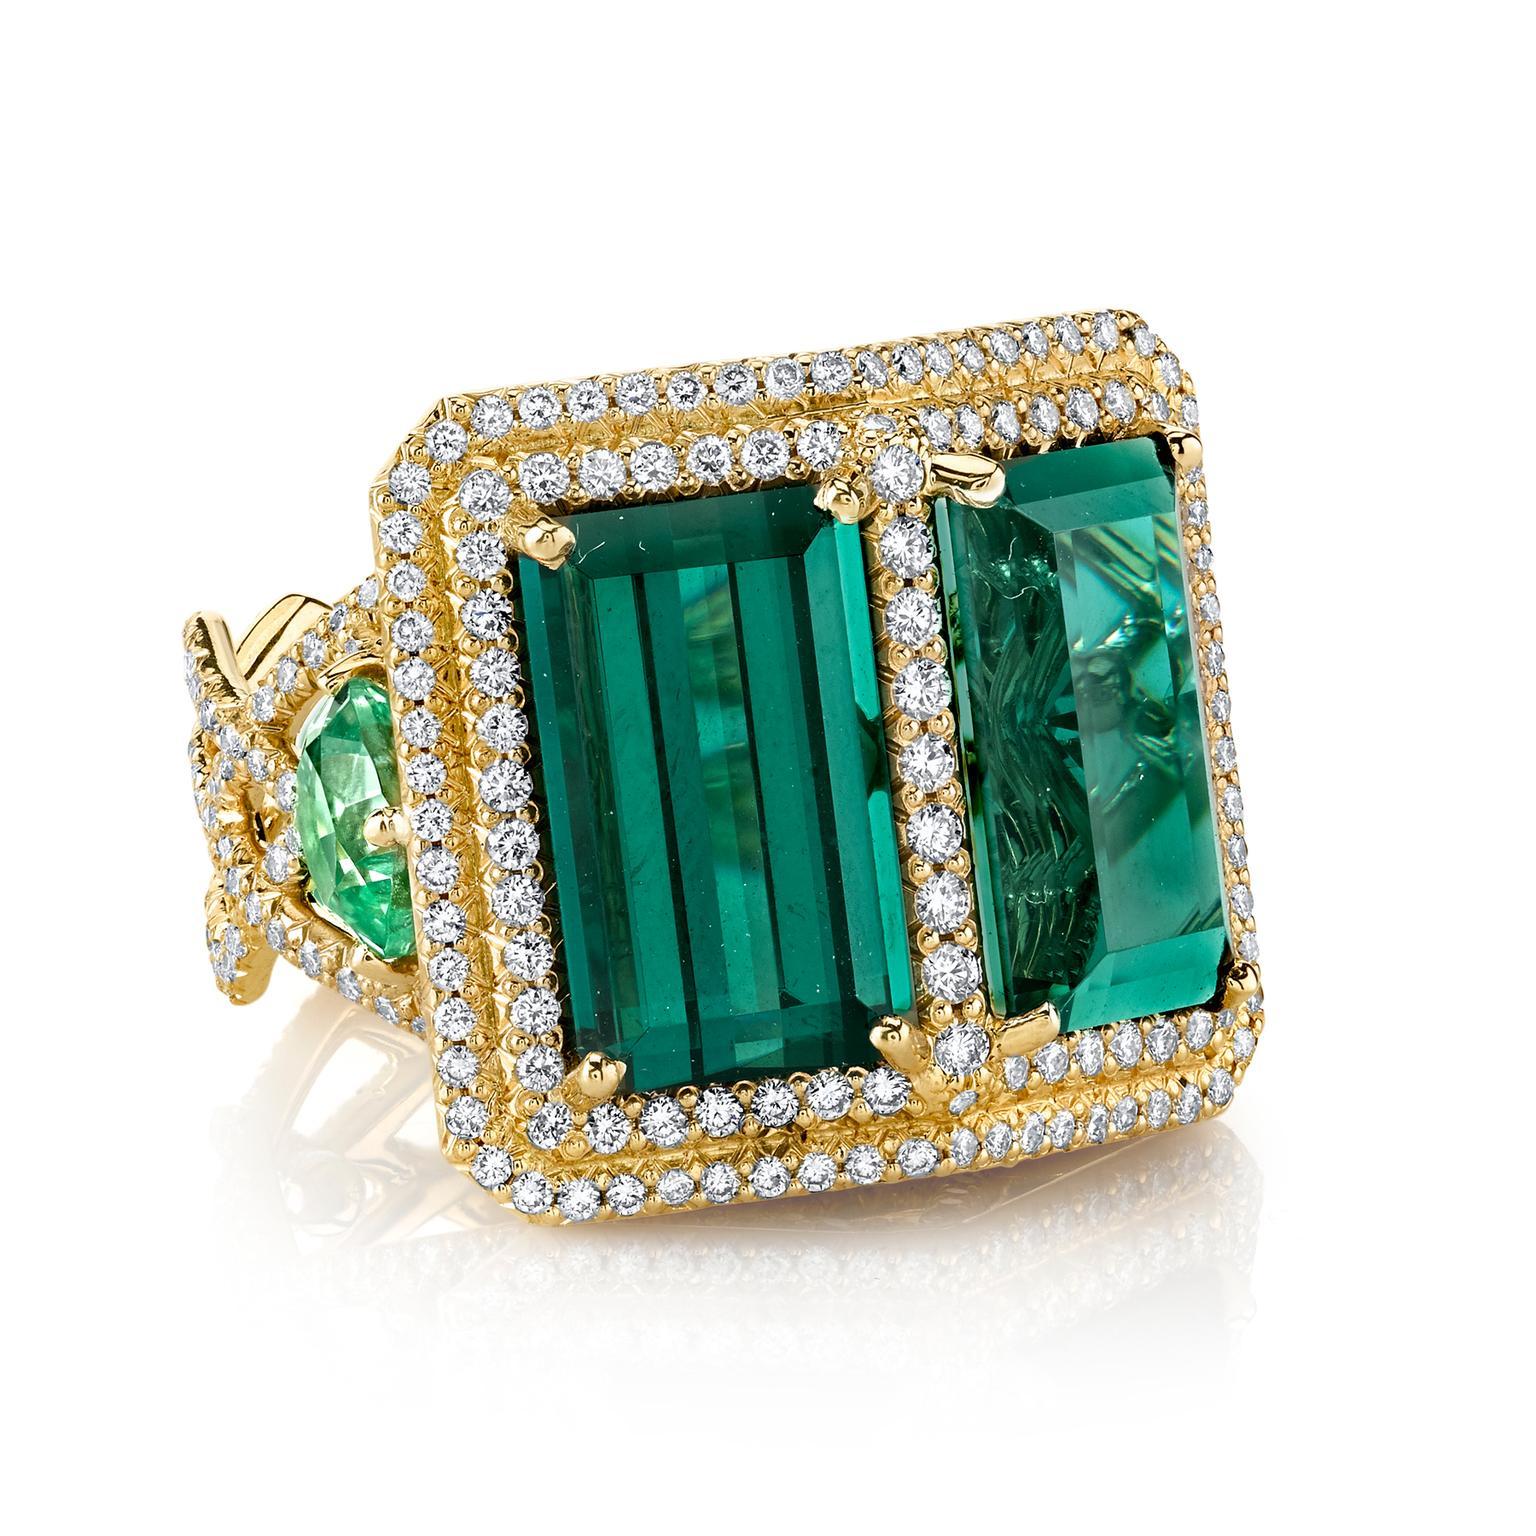 Erica Courtney double trouble tourmaline ring